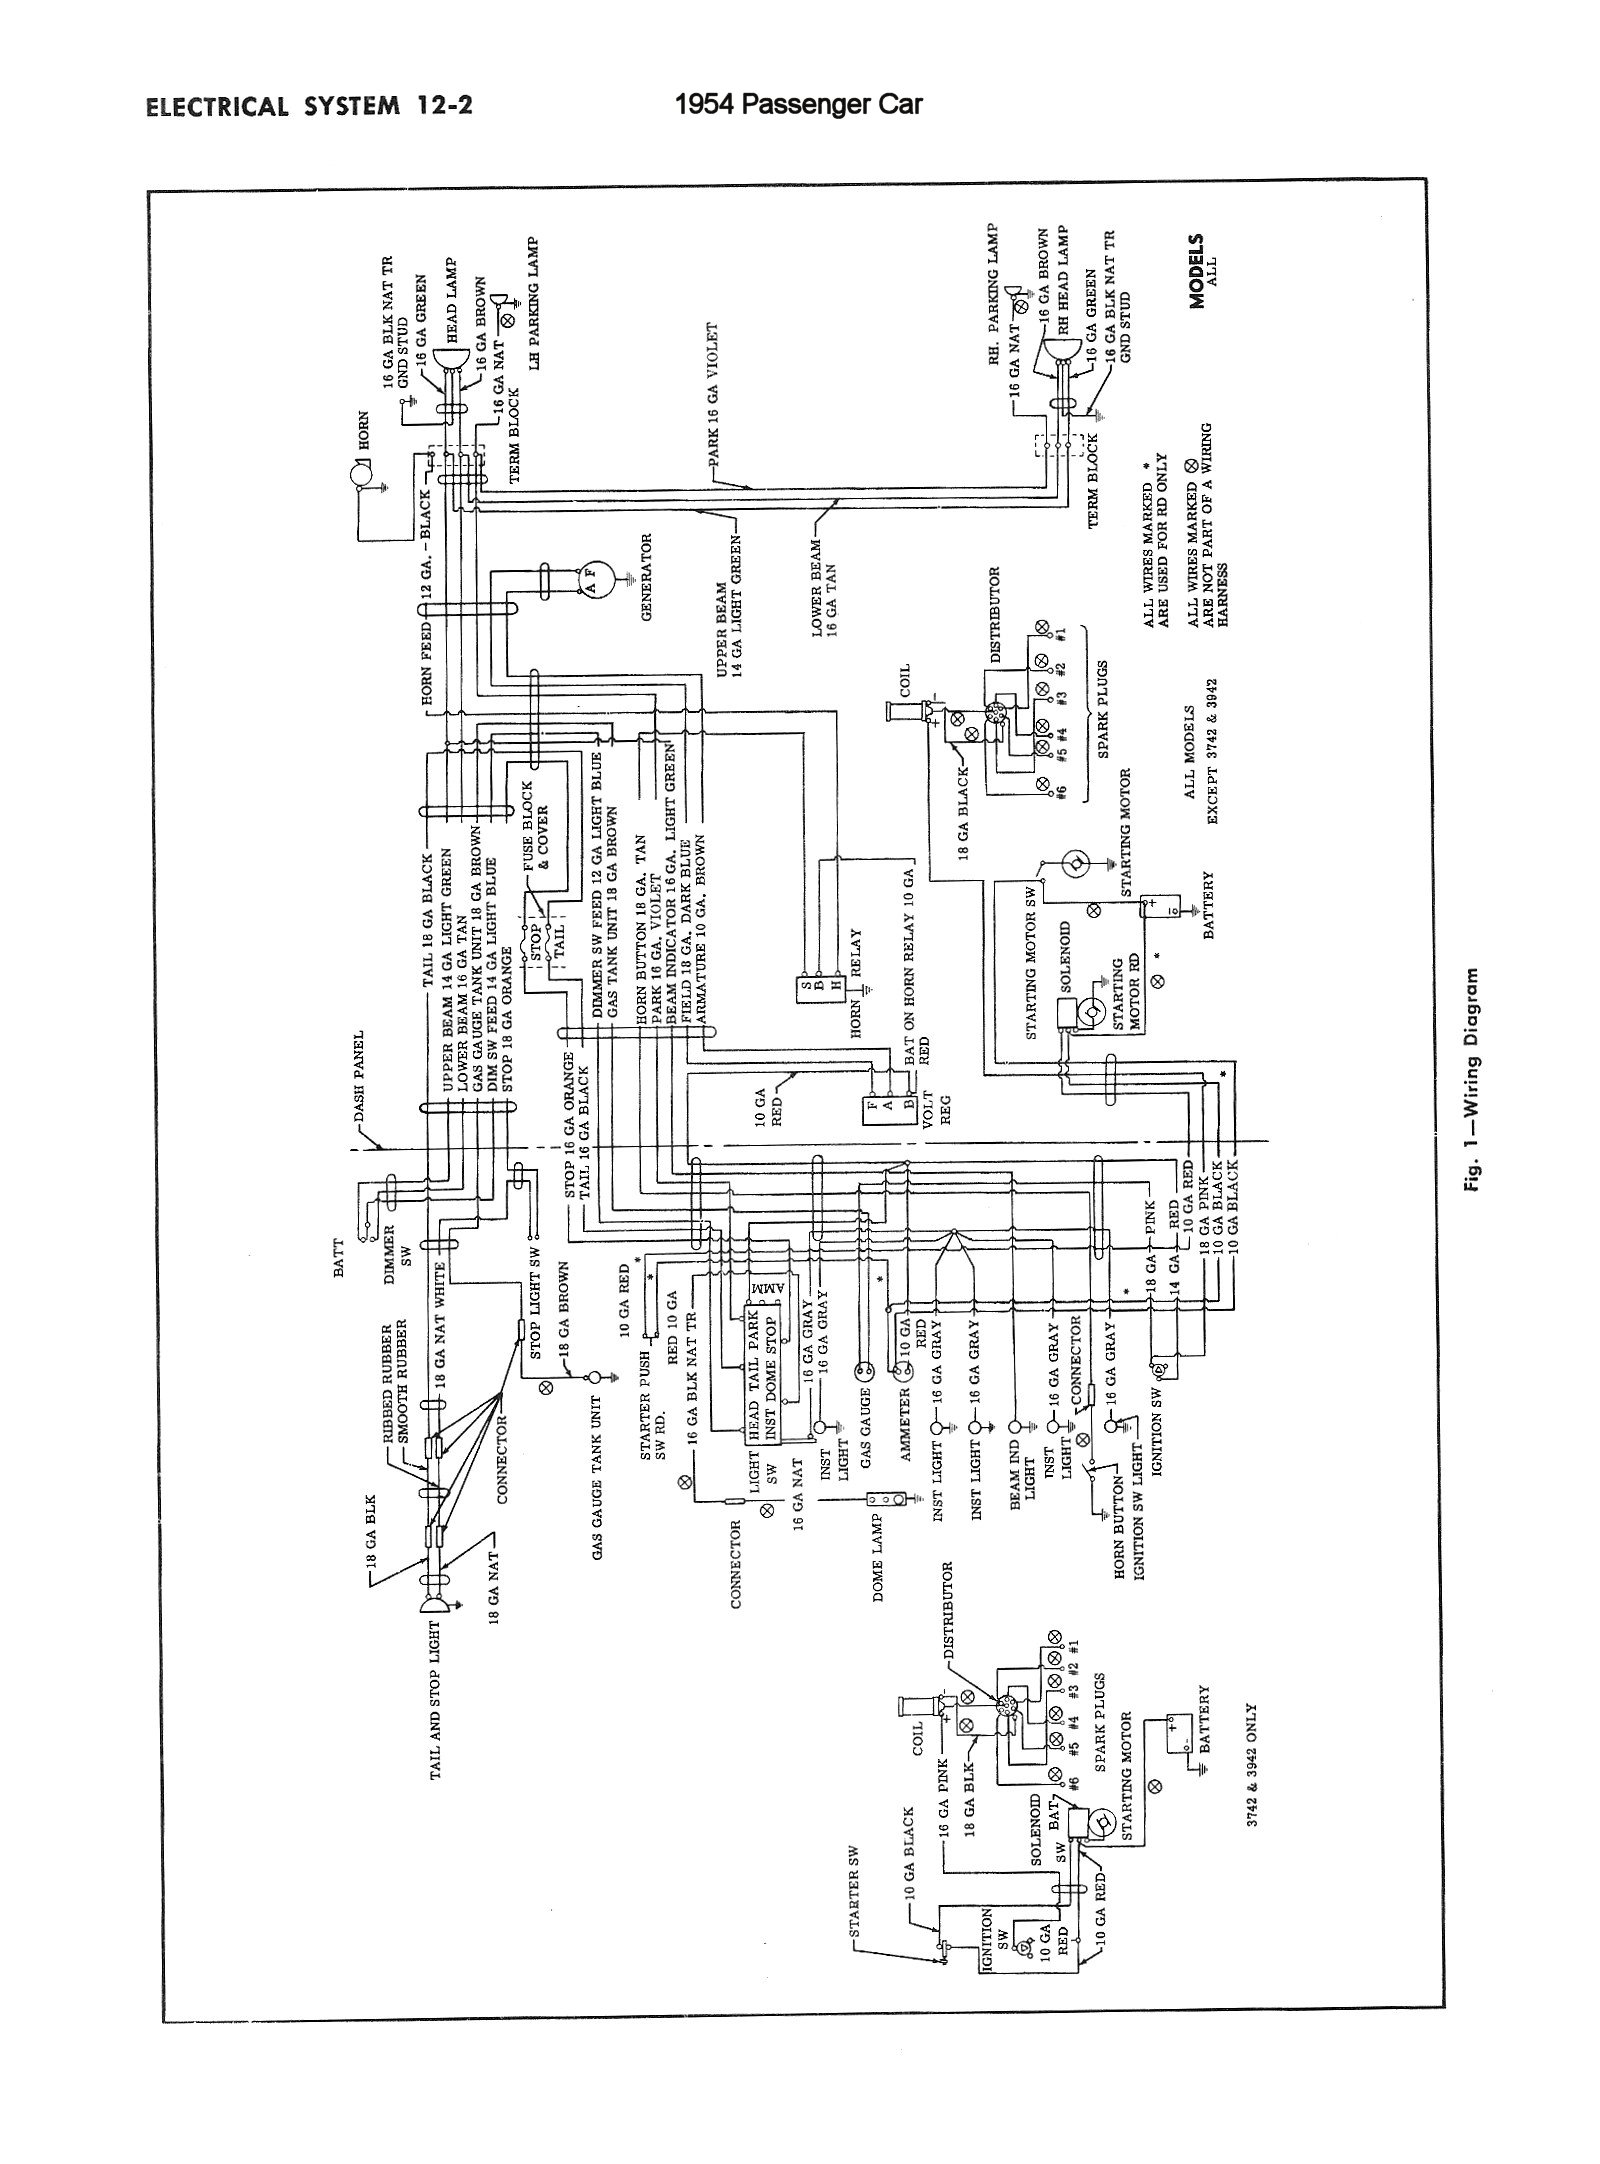 1950 chevy headlight switch diagram trusted wiring diagram u2022 rh soulmatestyle co 1957 Chevy Truck Fuse Block Diagram 1957 Chevy Truck Fuse Block Diagram